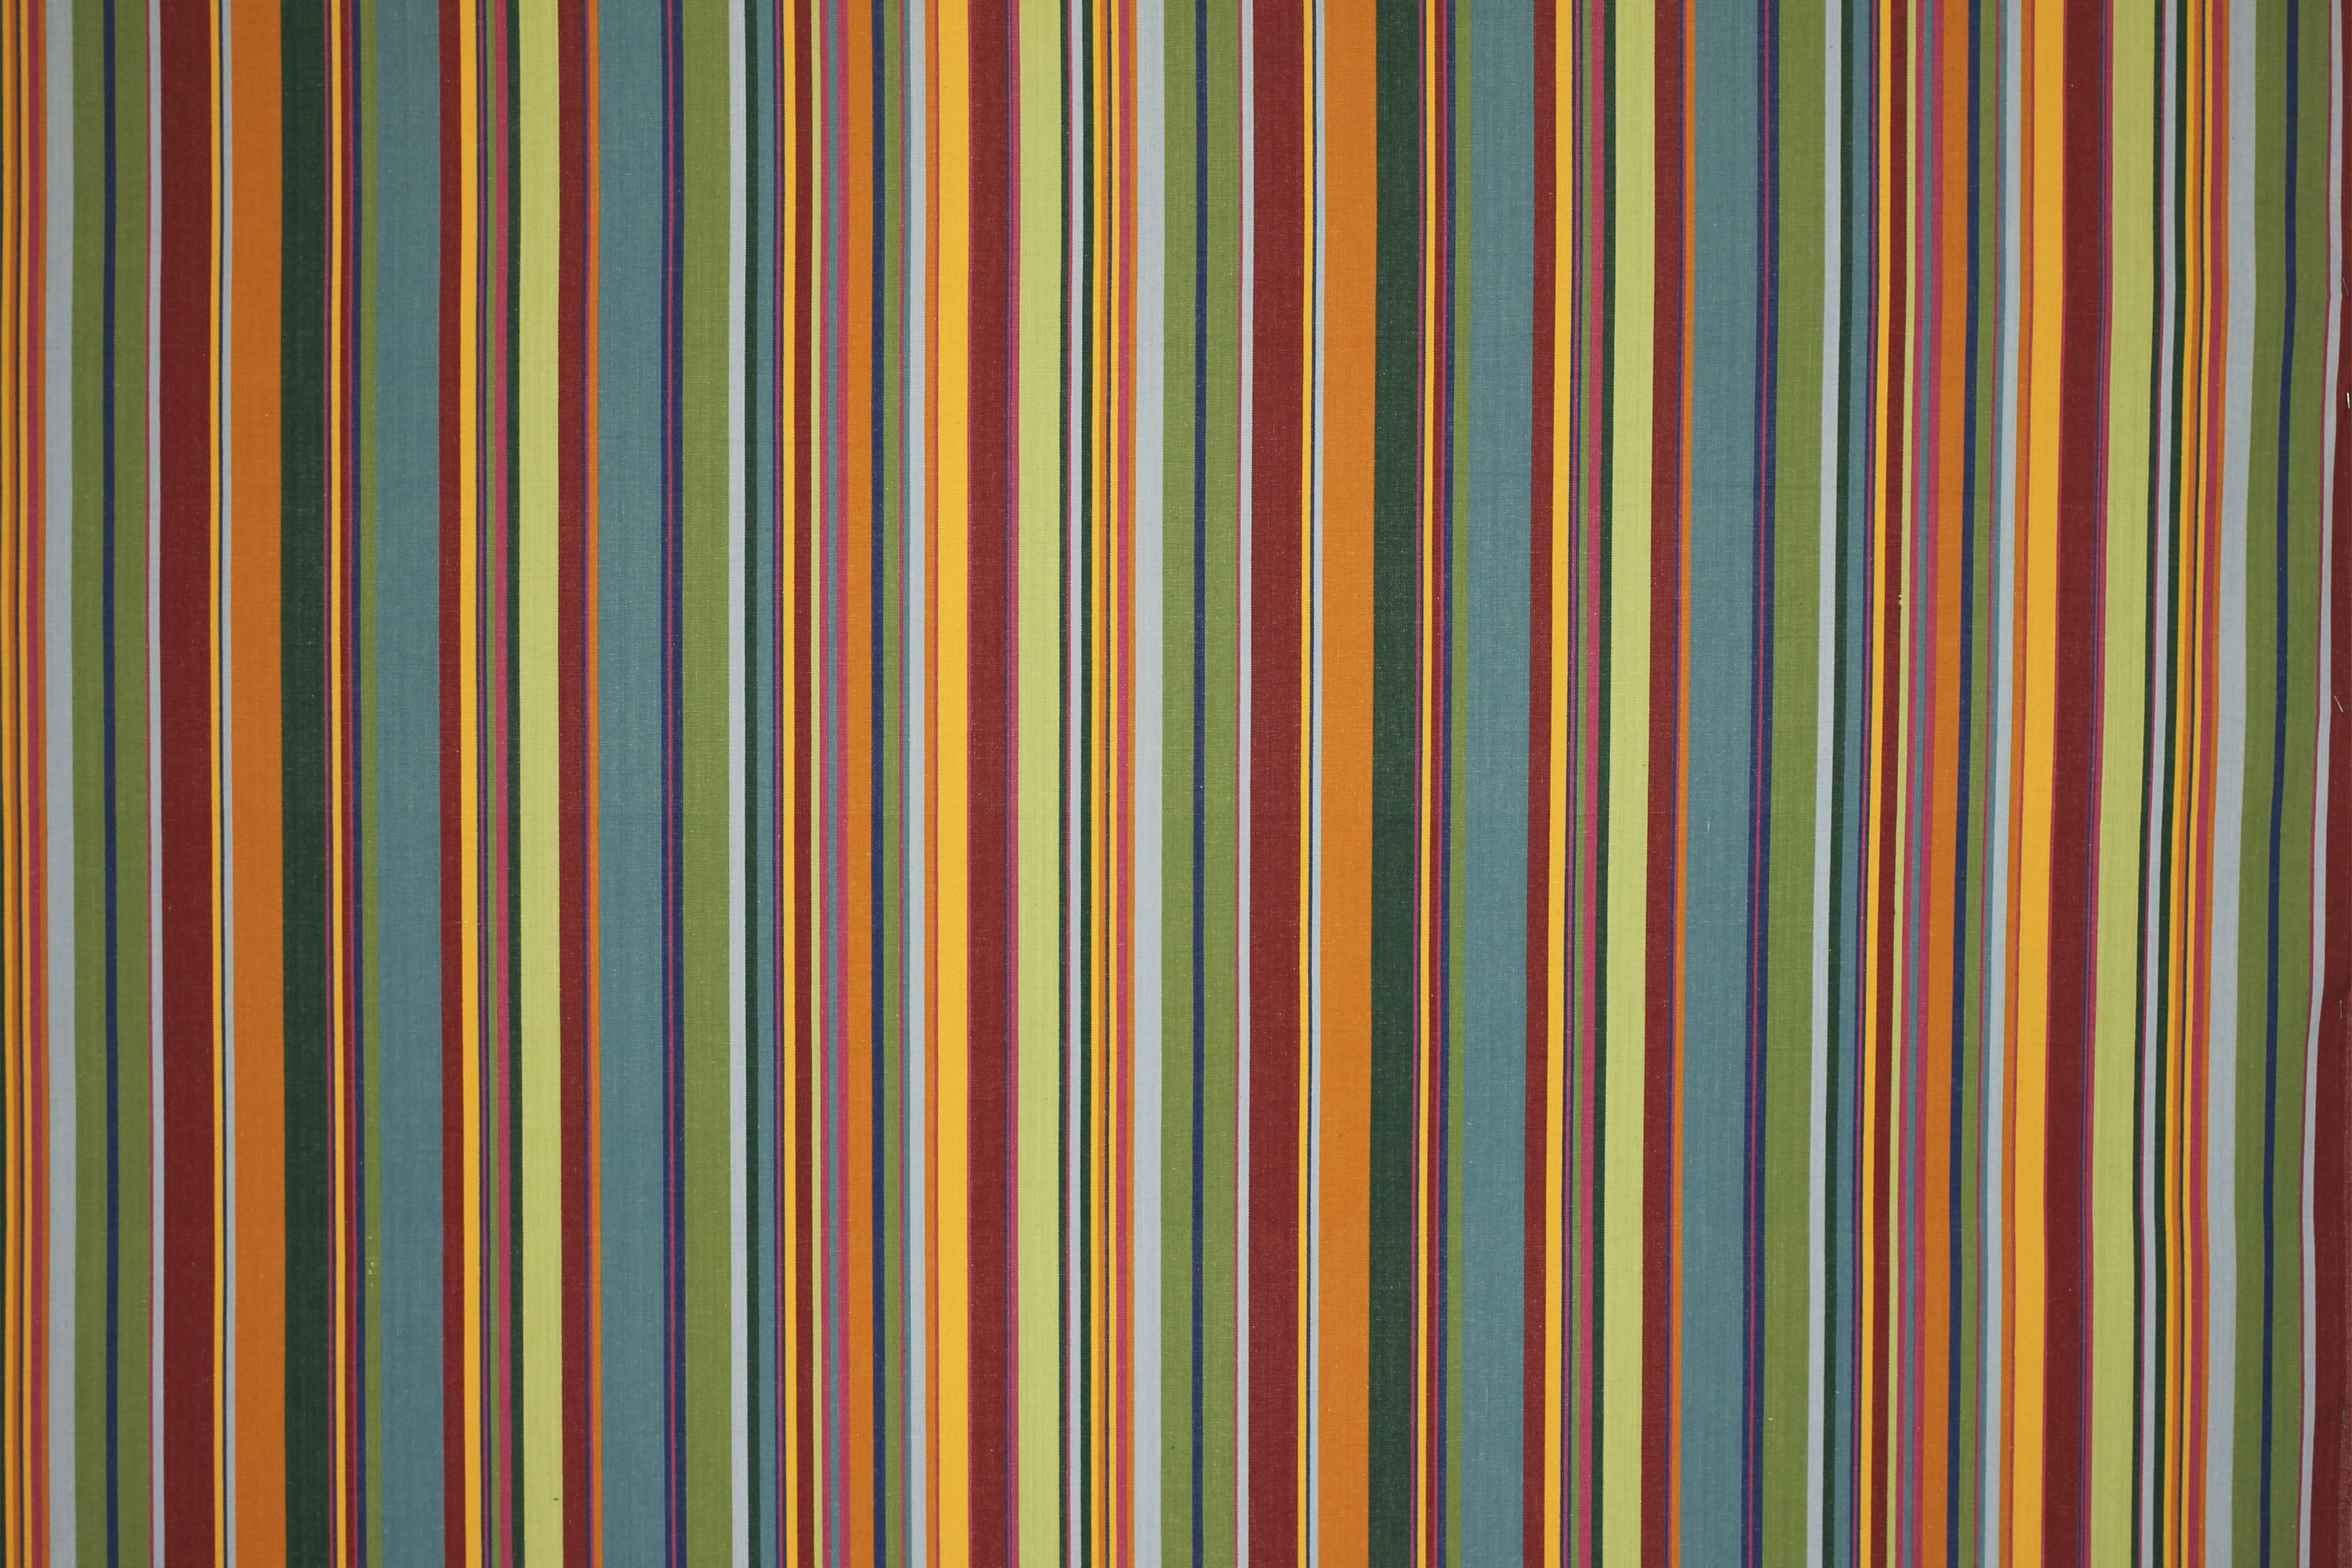 Bottle Green Striped Fabrics | Stripe Cotton Fabrics | Striped Curtain Fabrics | Upholstery Fabrics  Bowling Stripes